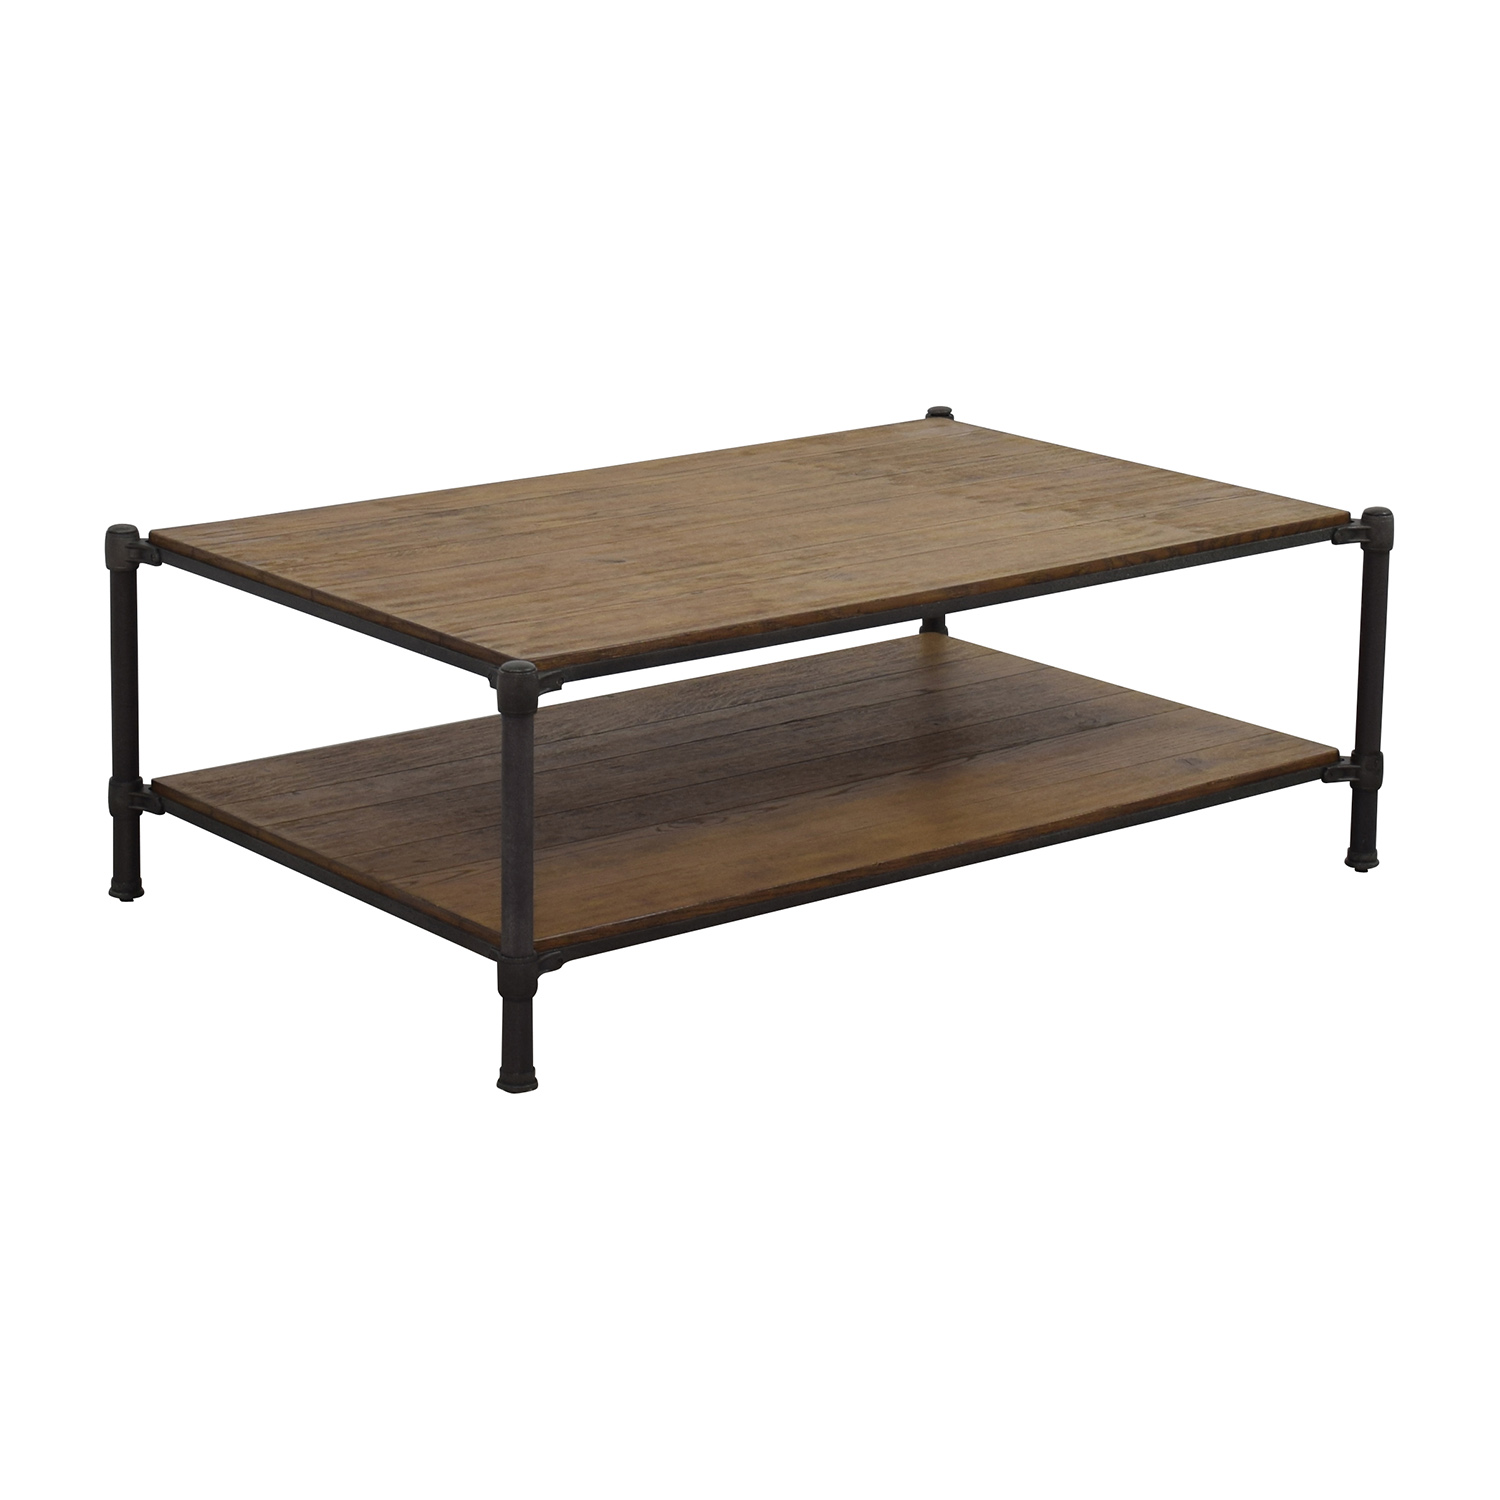 83 Off Ethan Allen Ethan Allen Wood And Metal Coffee Table Tables